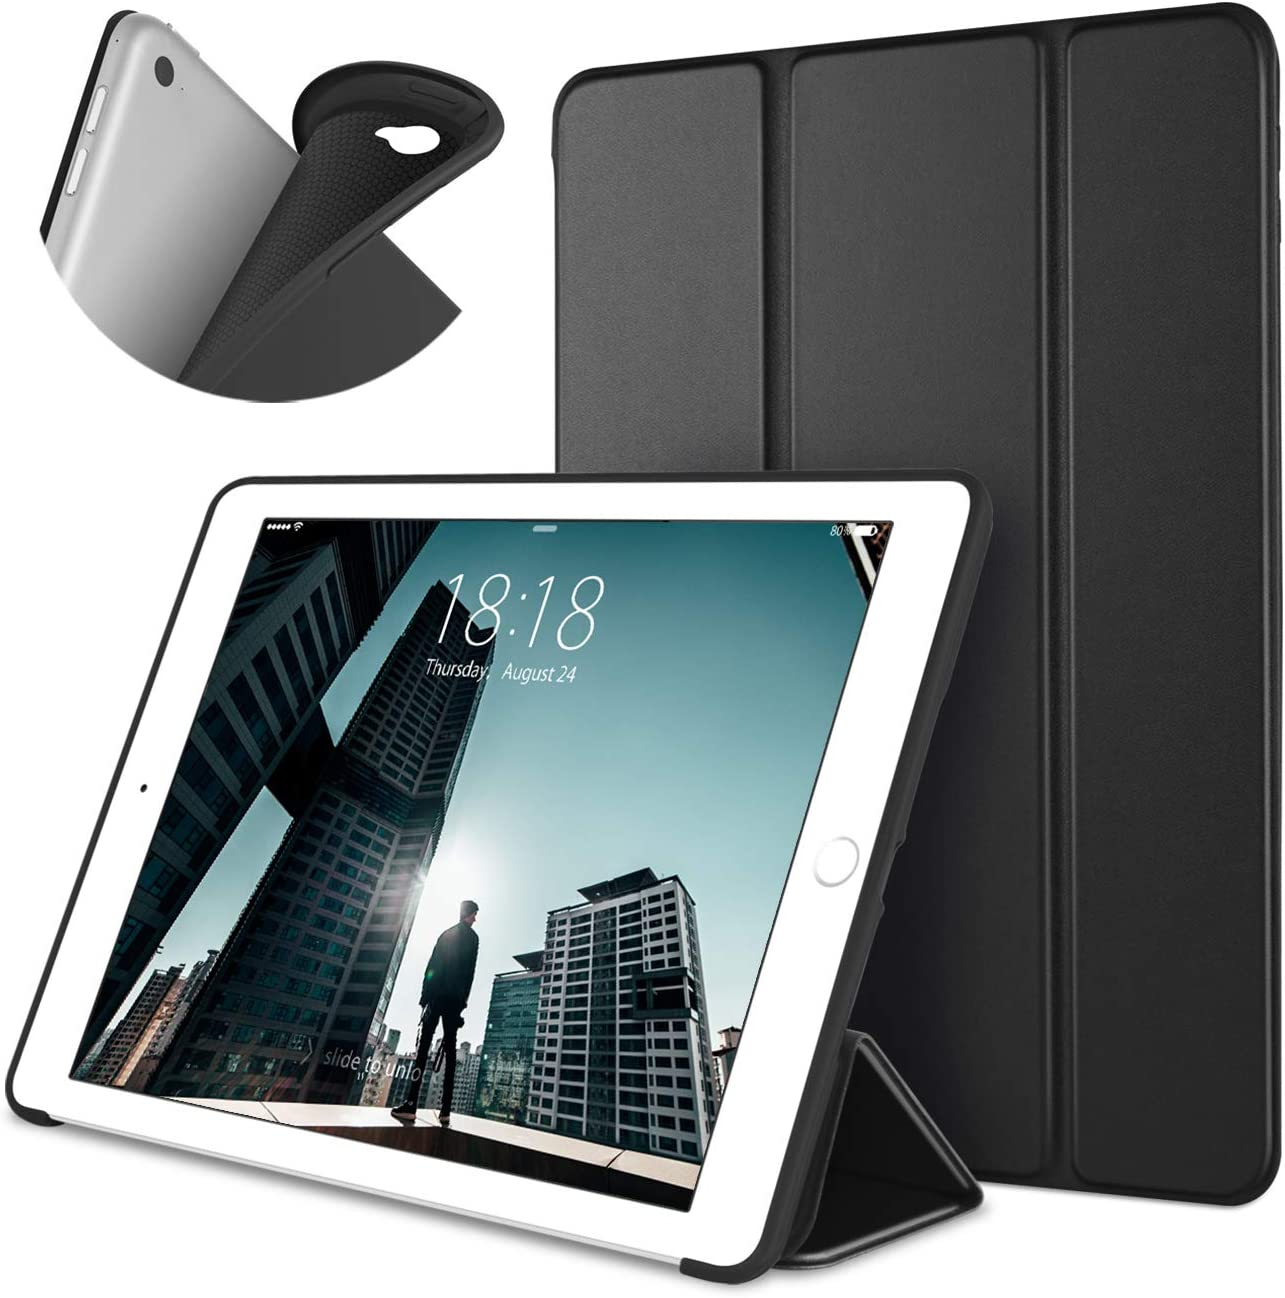 DTTO iPad Air 2 Case (2014 Released), Ultra Slim Lightweight Smart Case Trifold Stand with Flexible Soft TPU Back Cover for Apple iPad Air 2 (Model A1566/A1567), Black